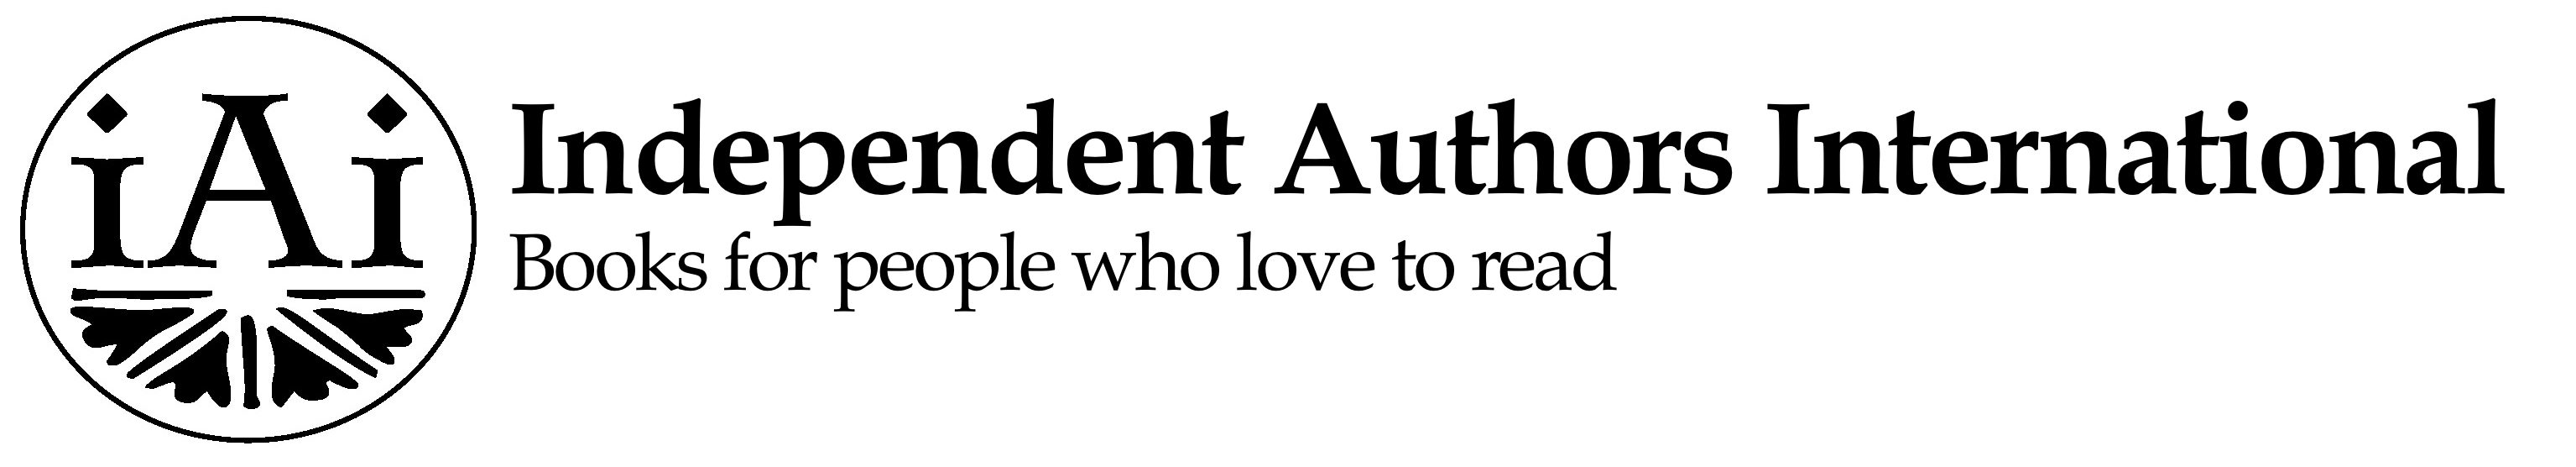 Independent Authors International